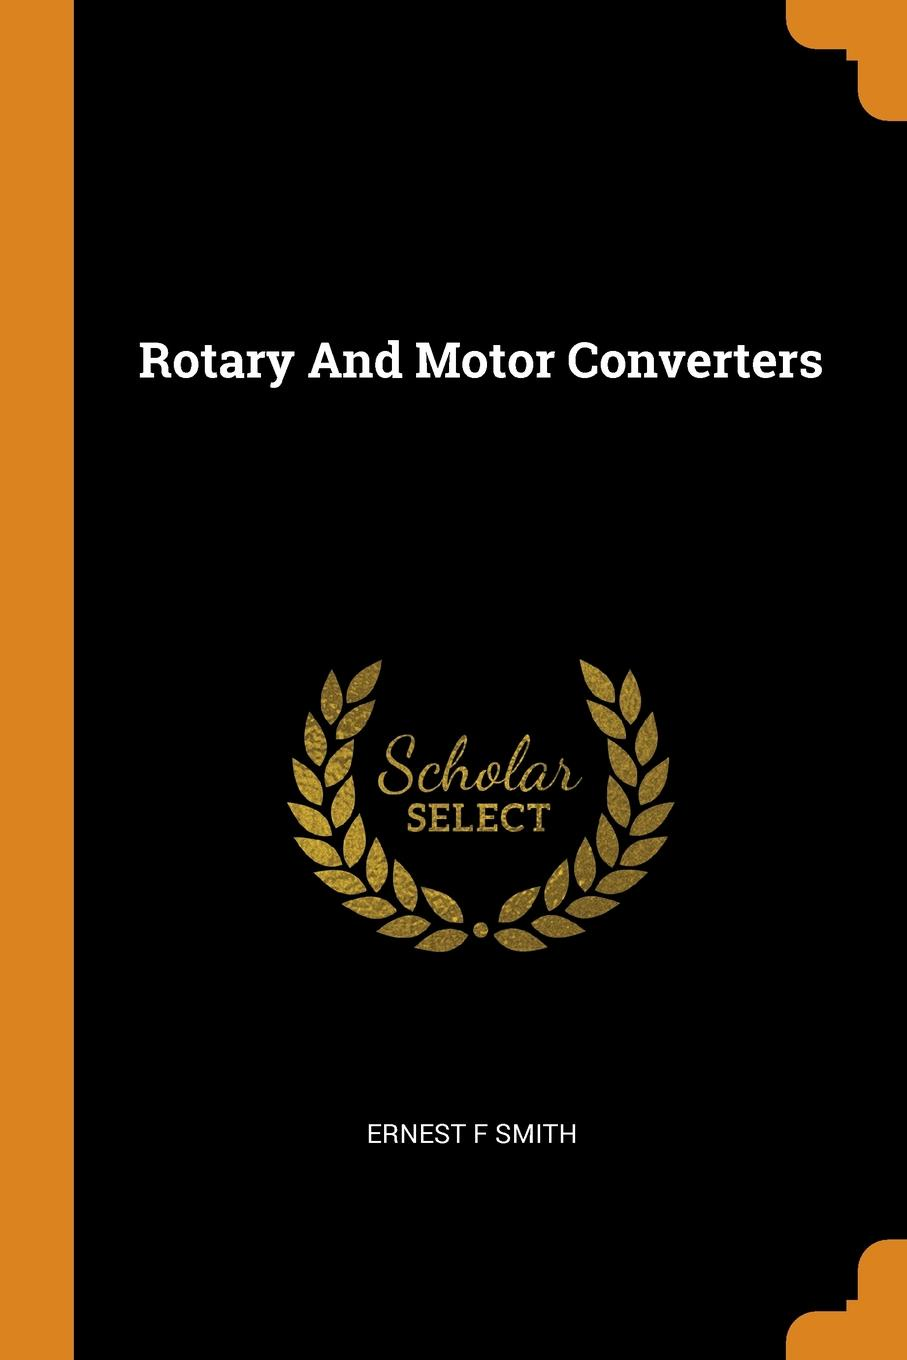 Rotary And Motor Converters